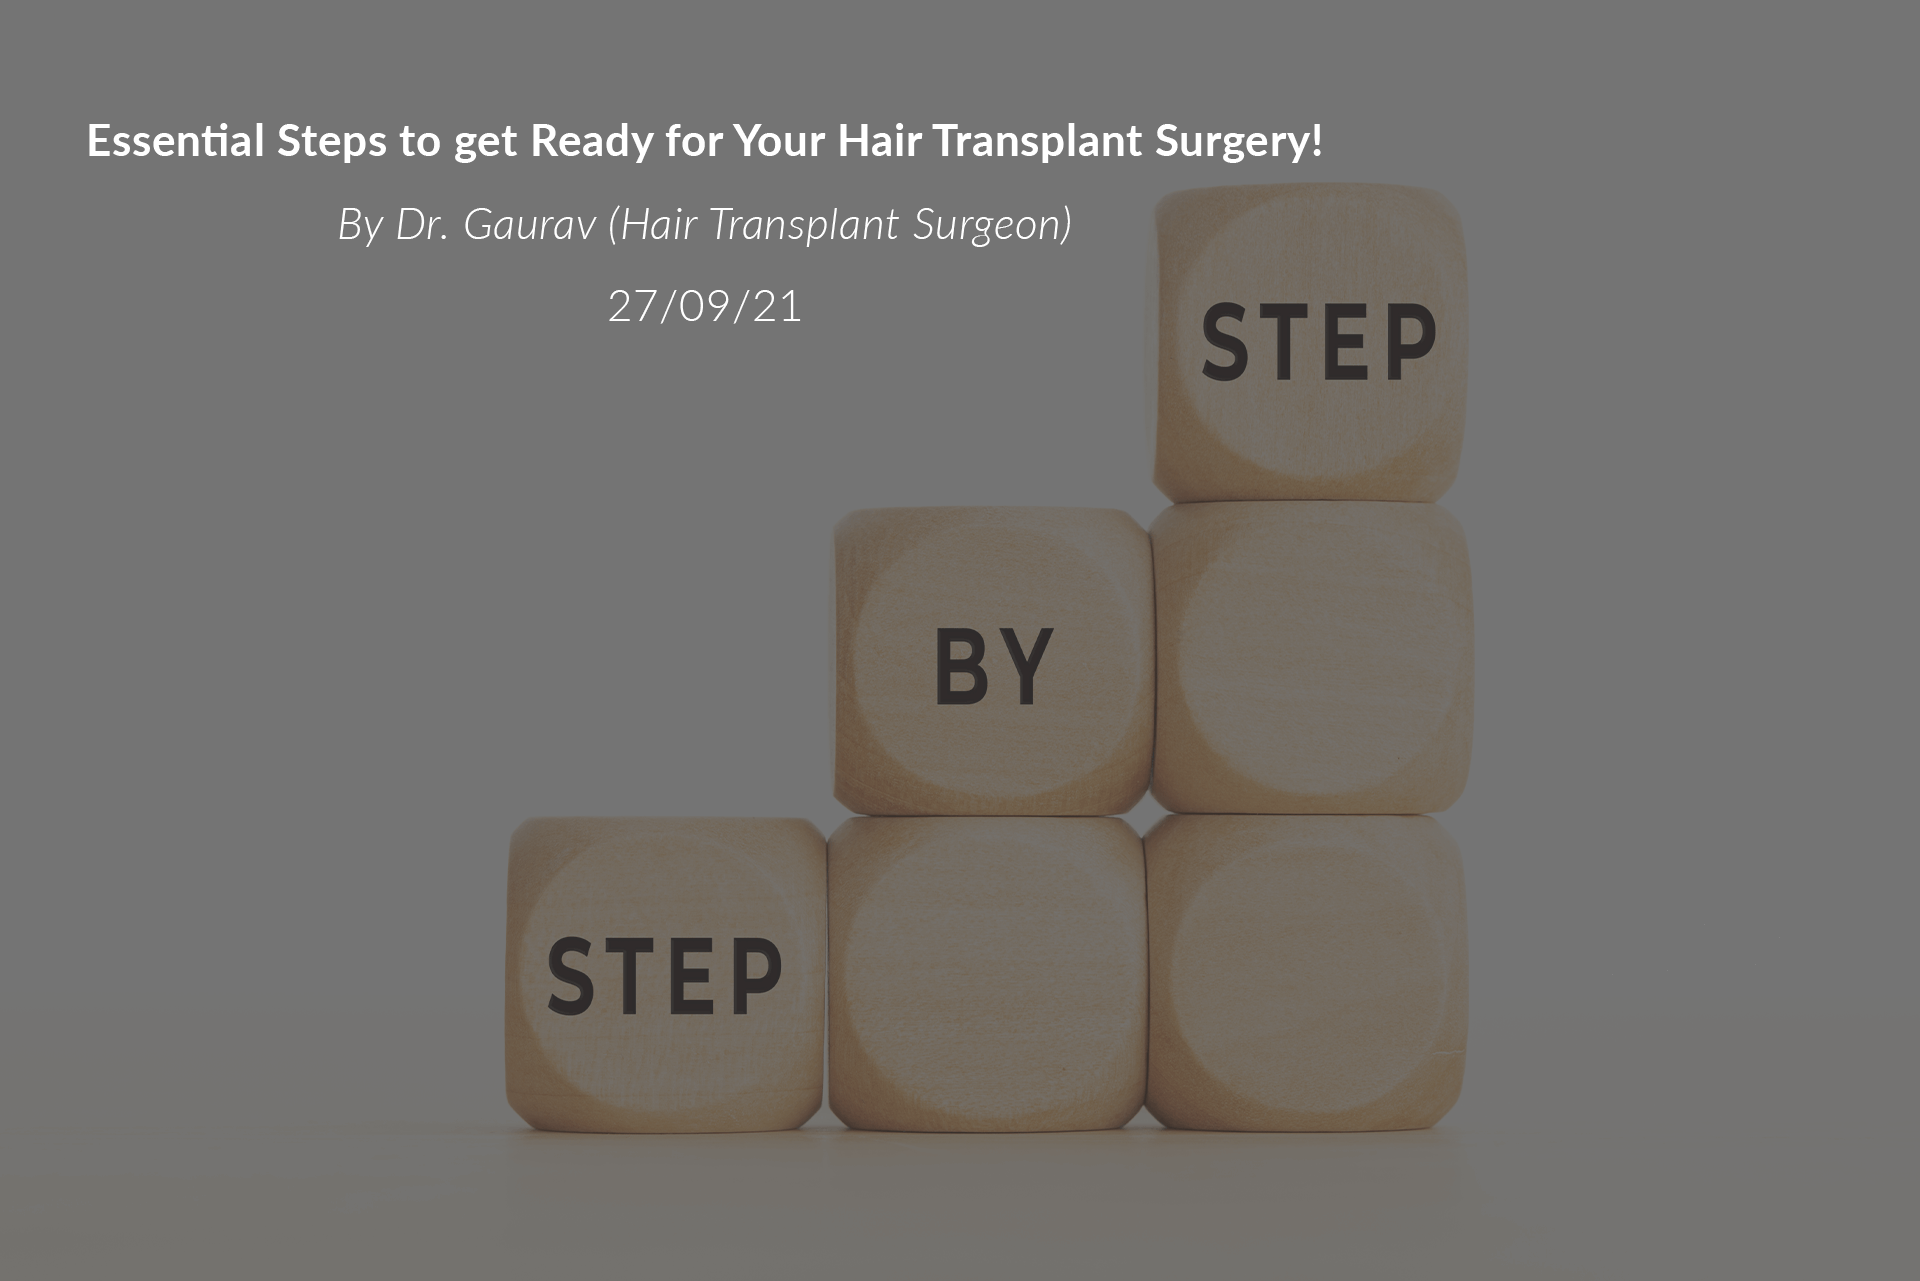 Essential Steps to get Ready for Your Hair Transplant Surgery!